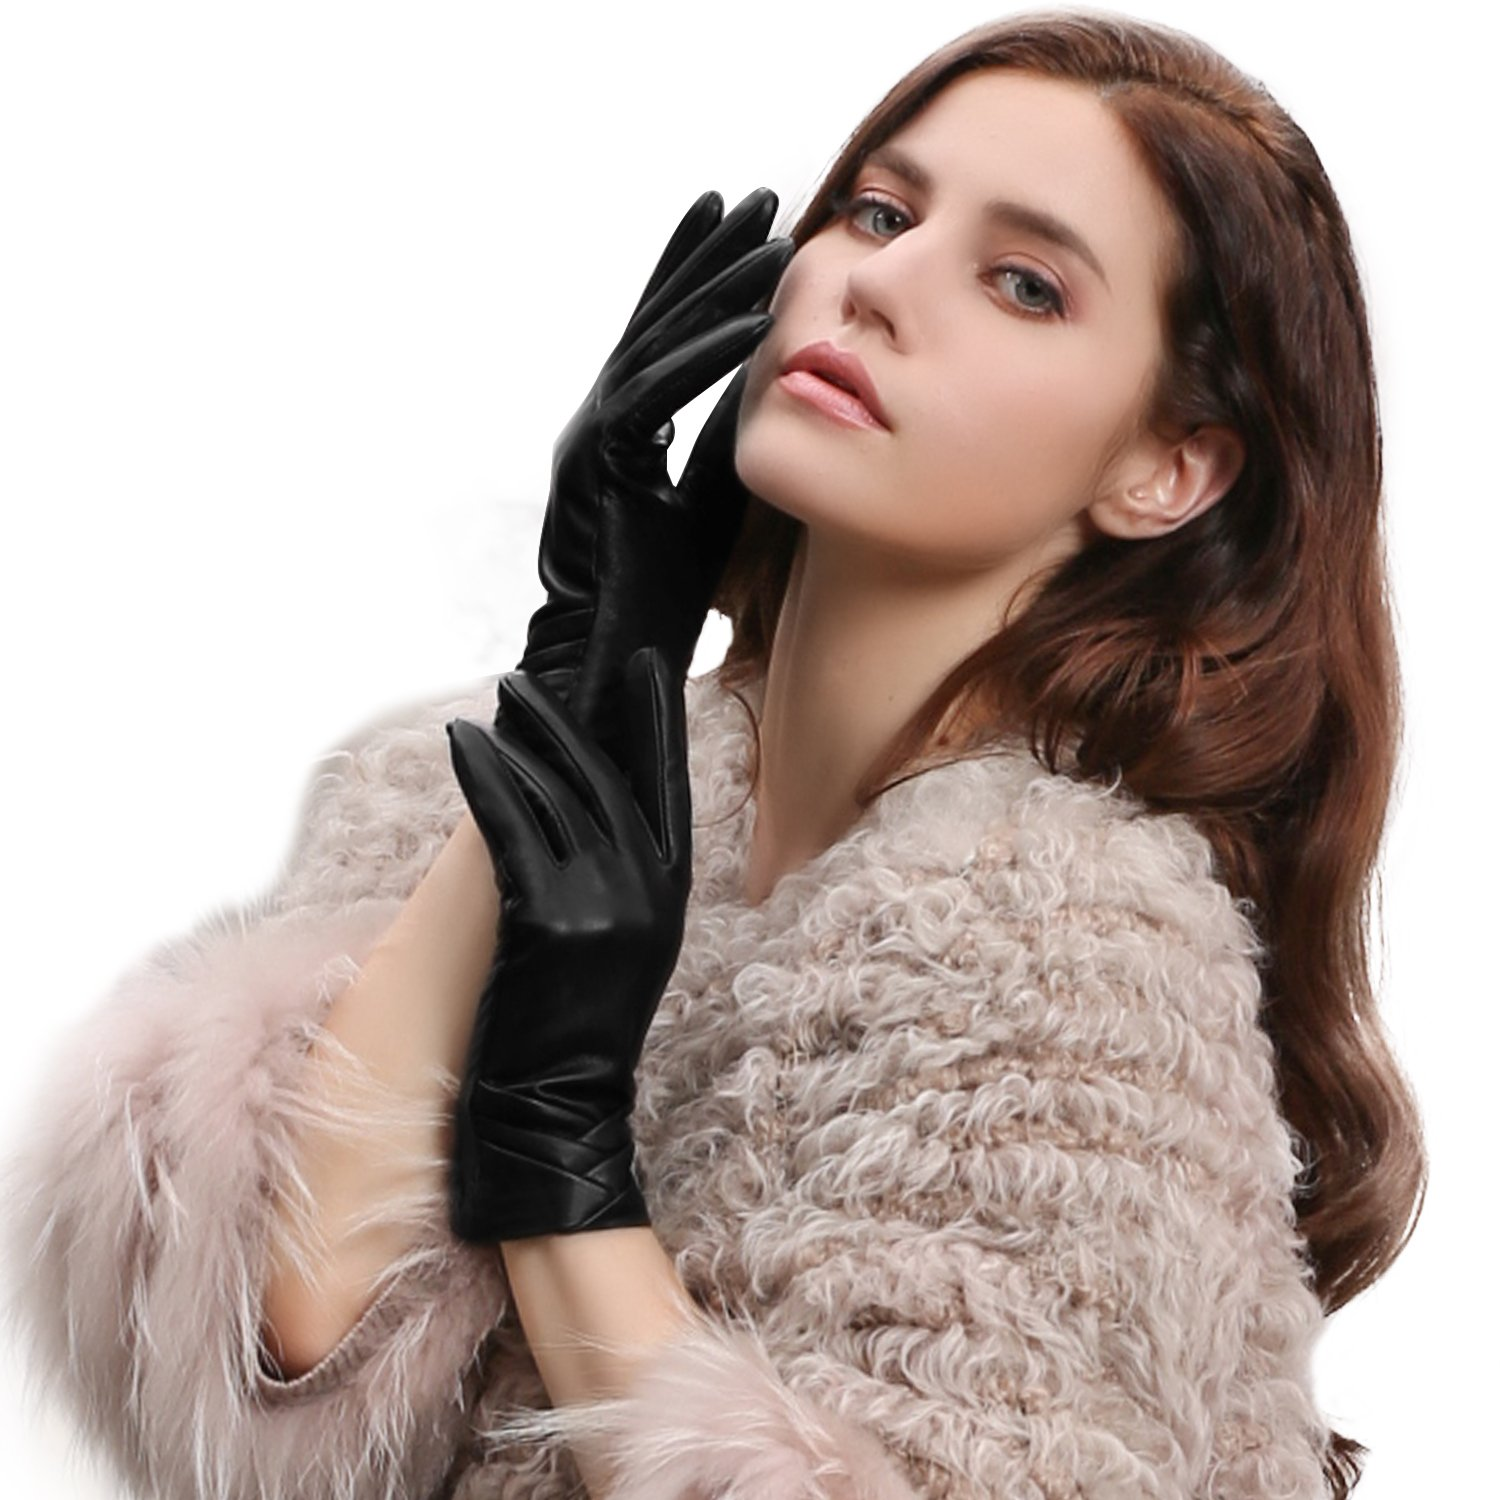 GSG Original Design Womens Full Palm Touchscreen Gloves Spain Genuine Nappa Leather Winter Driving Texting Trendy Ruched Warm Faux Fur 7.5